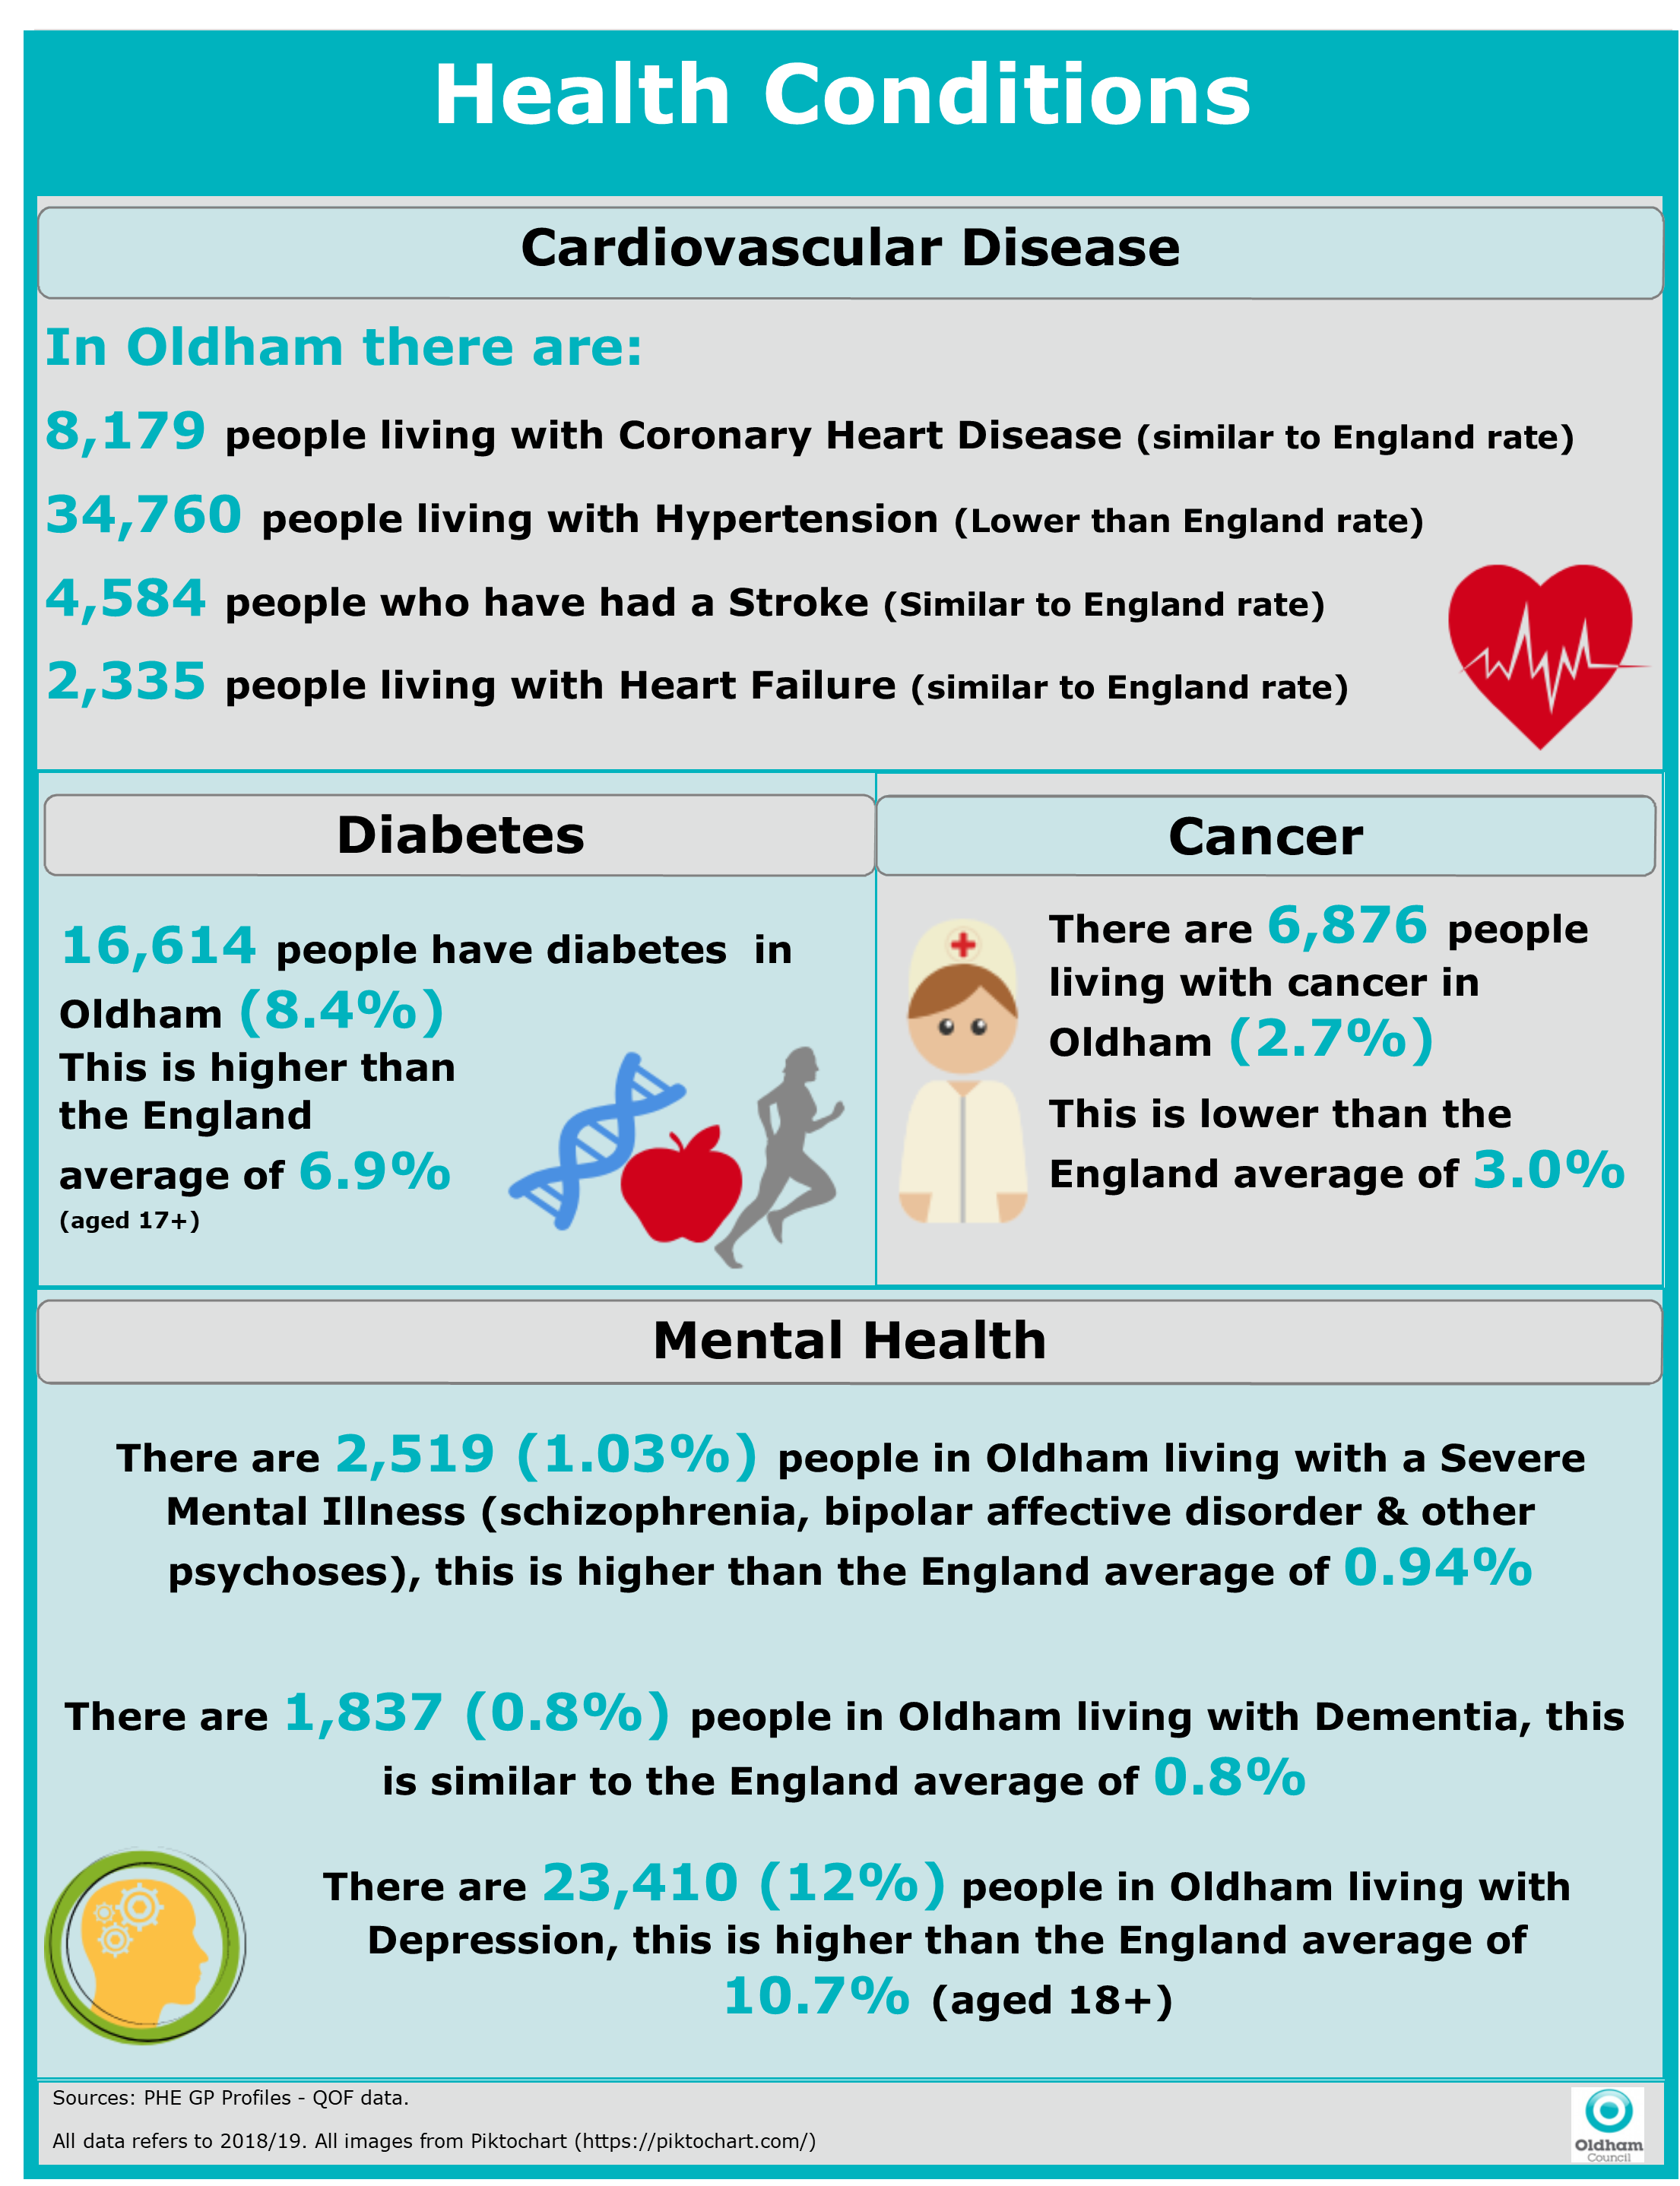 JSNA Health Conditions Graphic